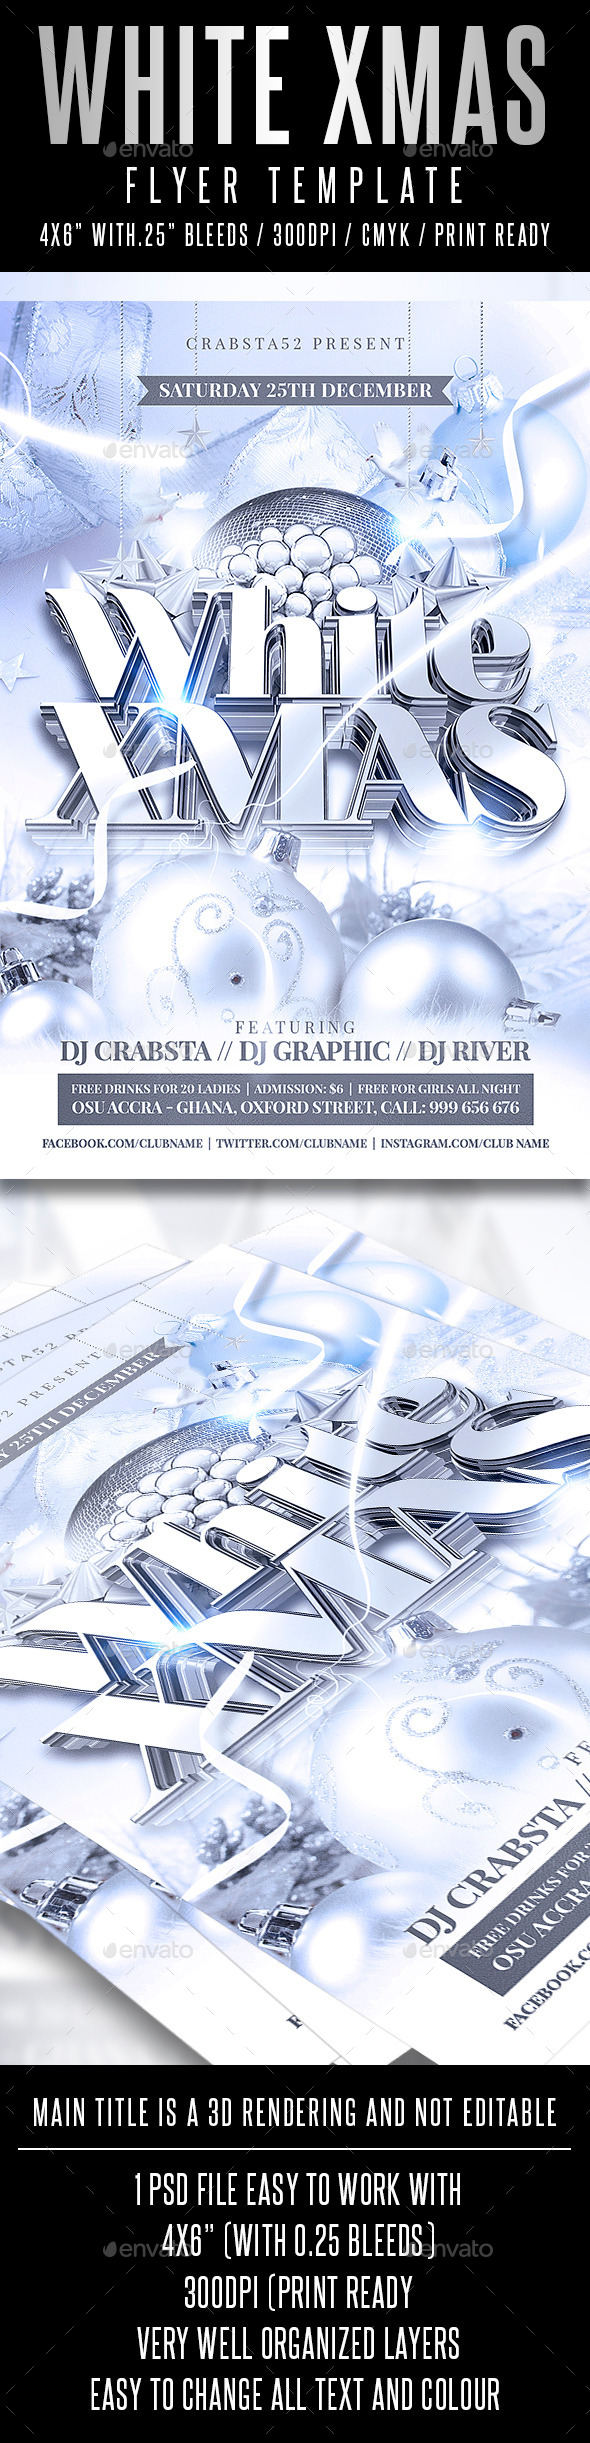 White Xmas Flyer Template - Holidays Events